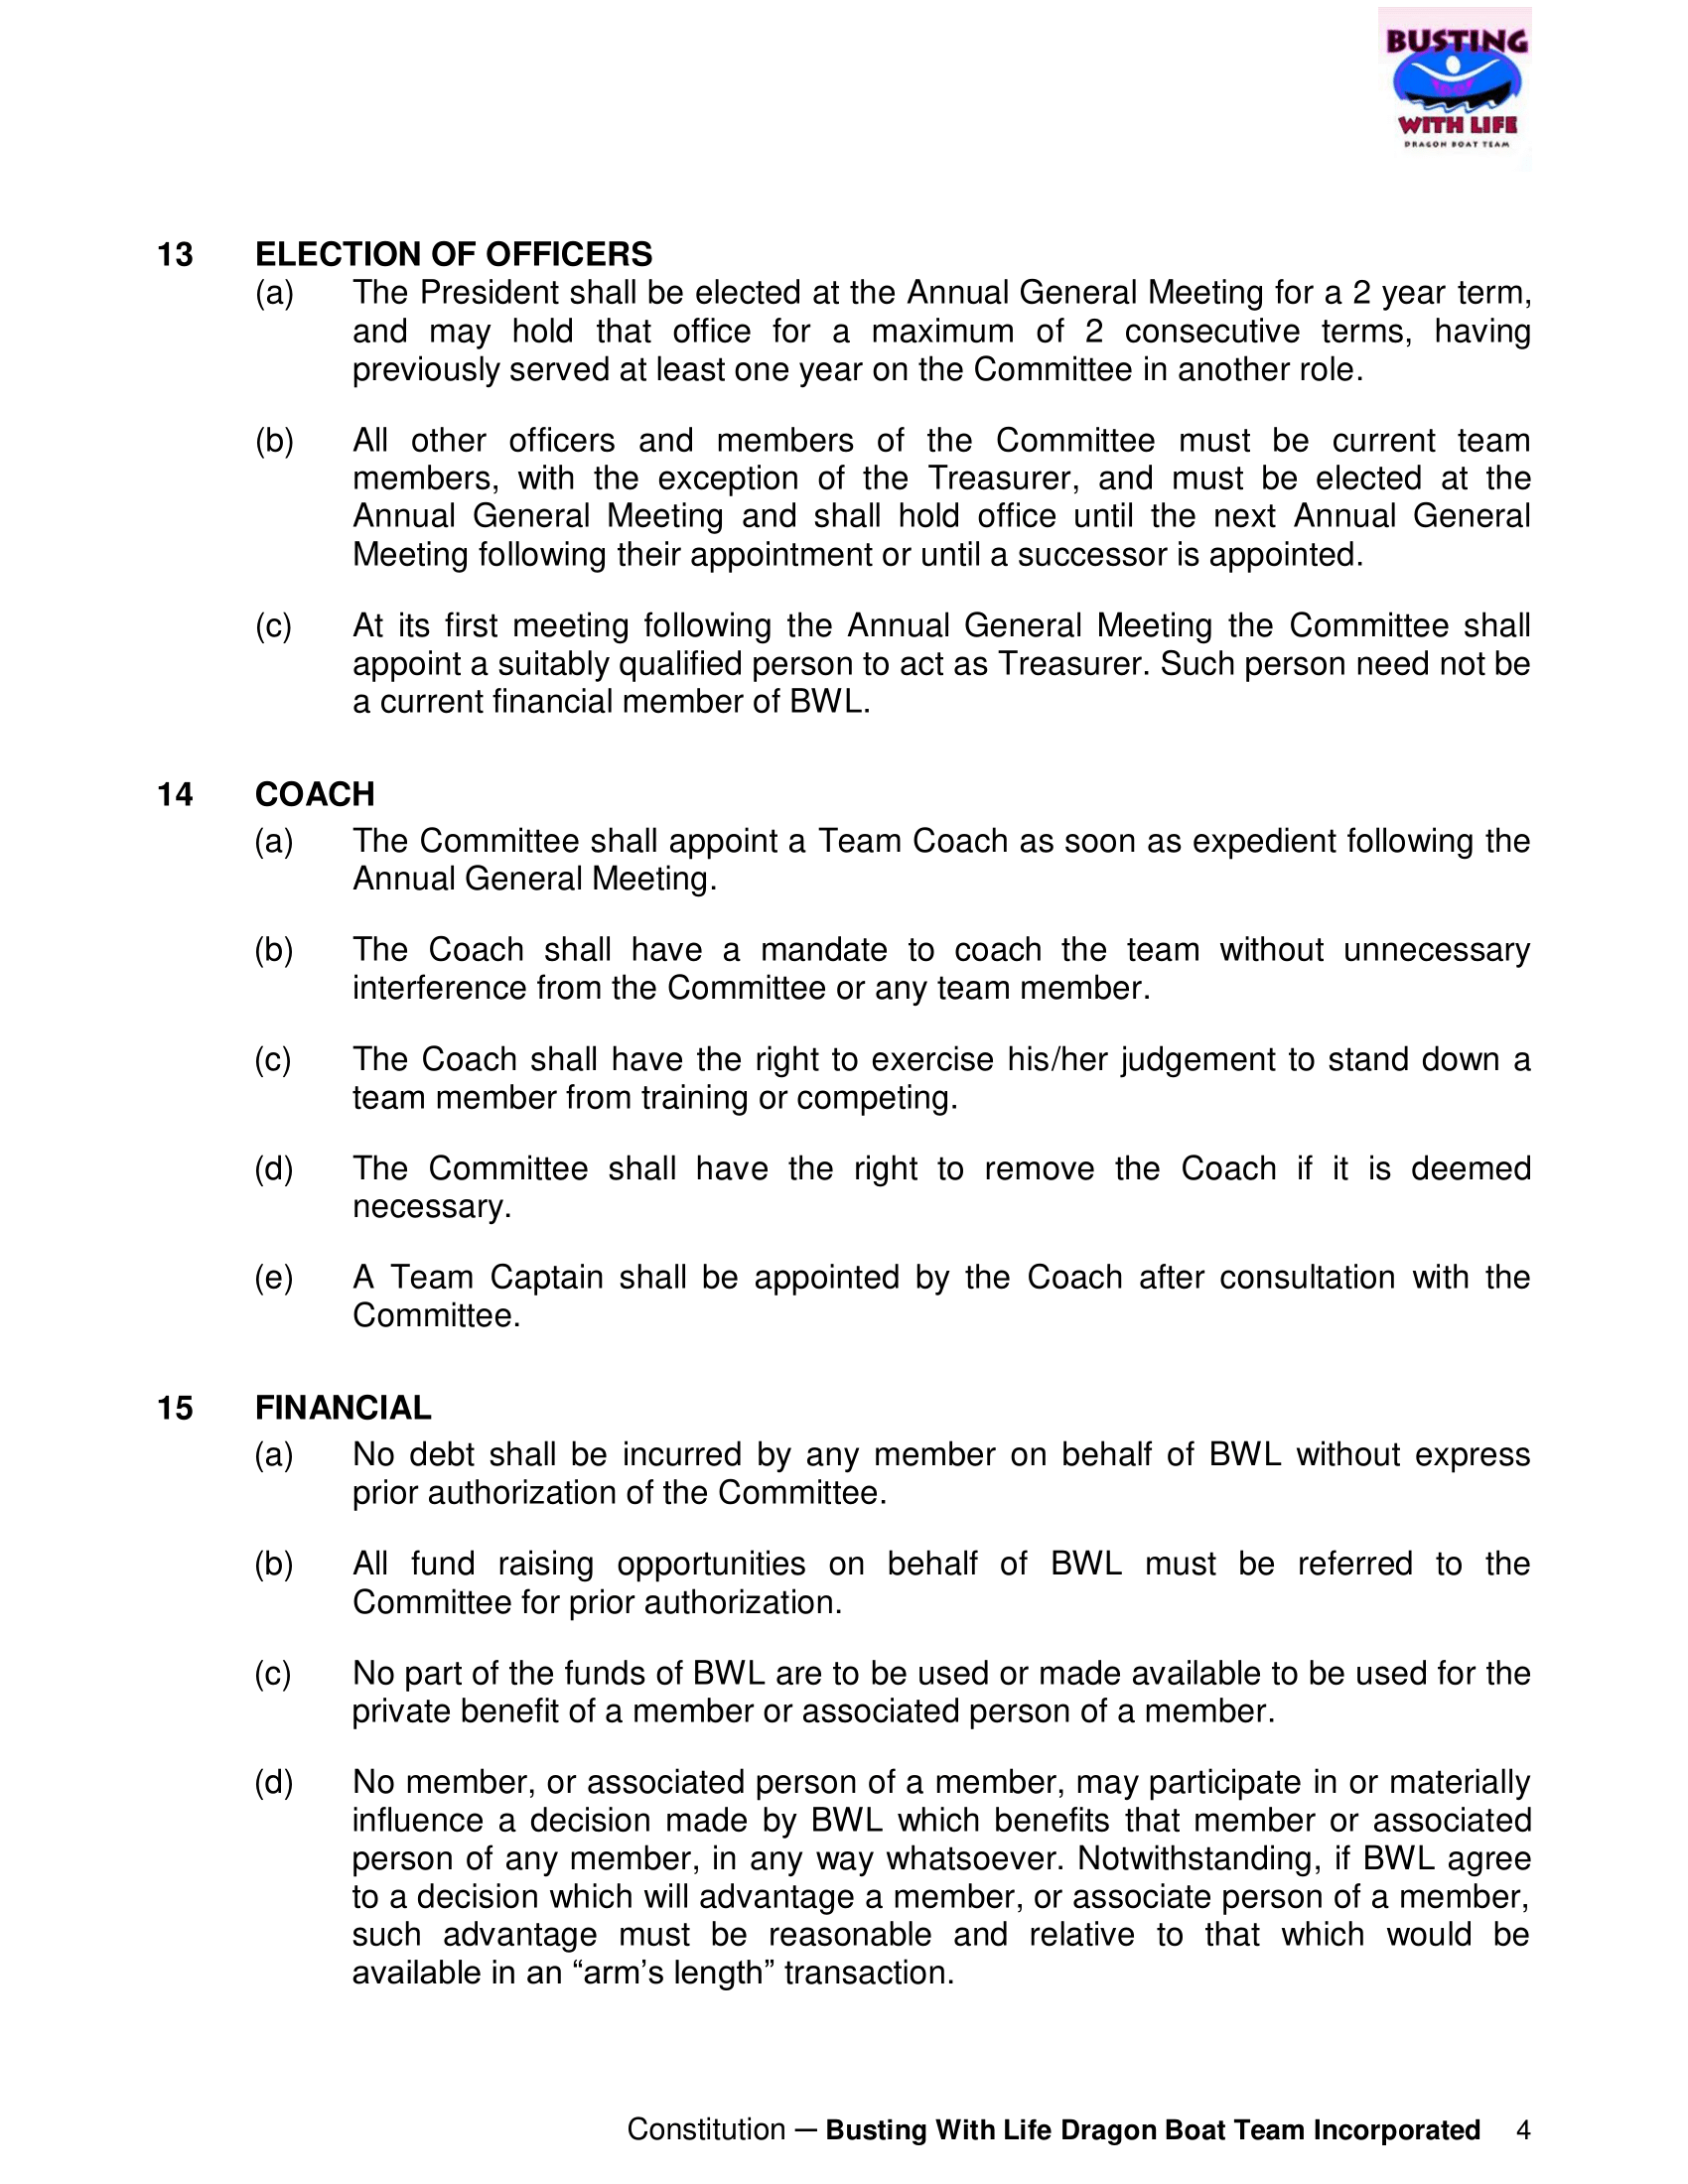 BWL Constitution-4.png